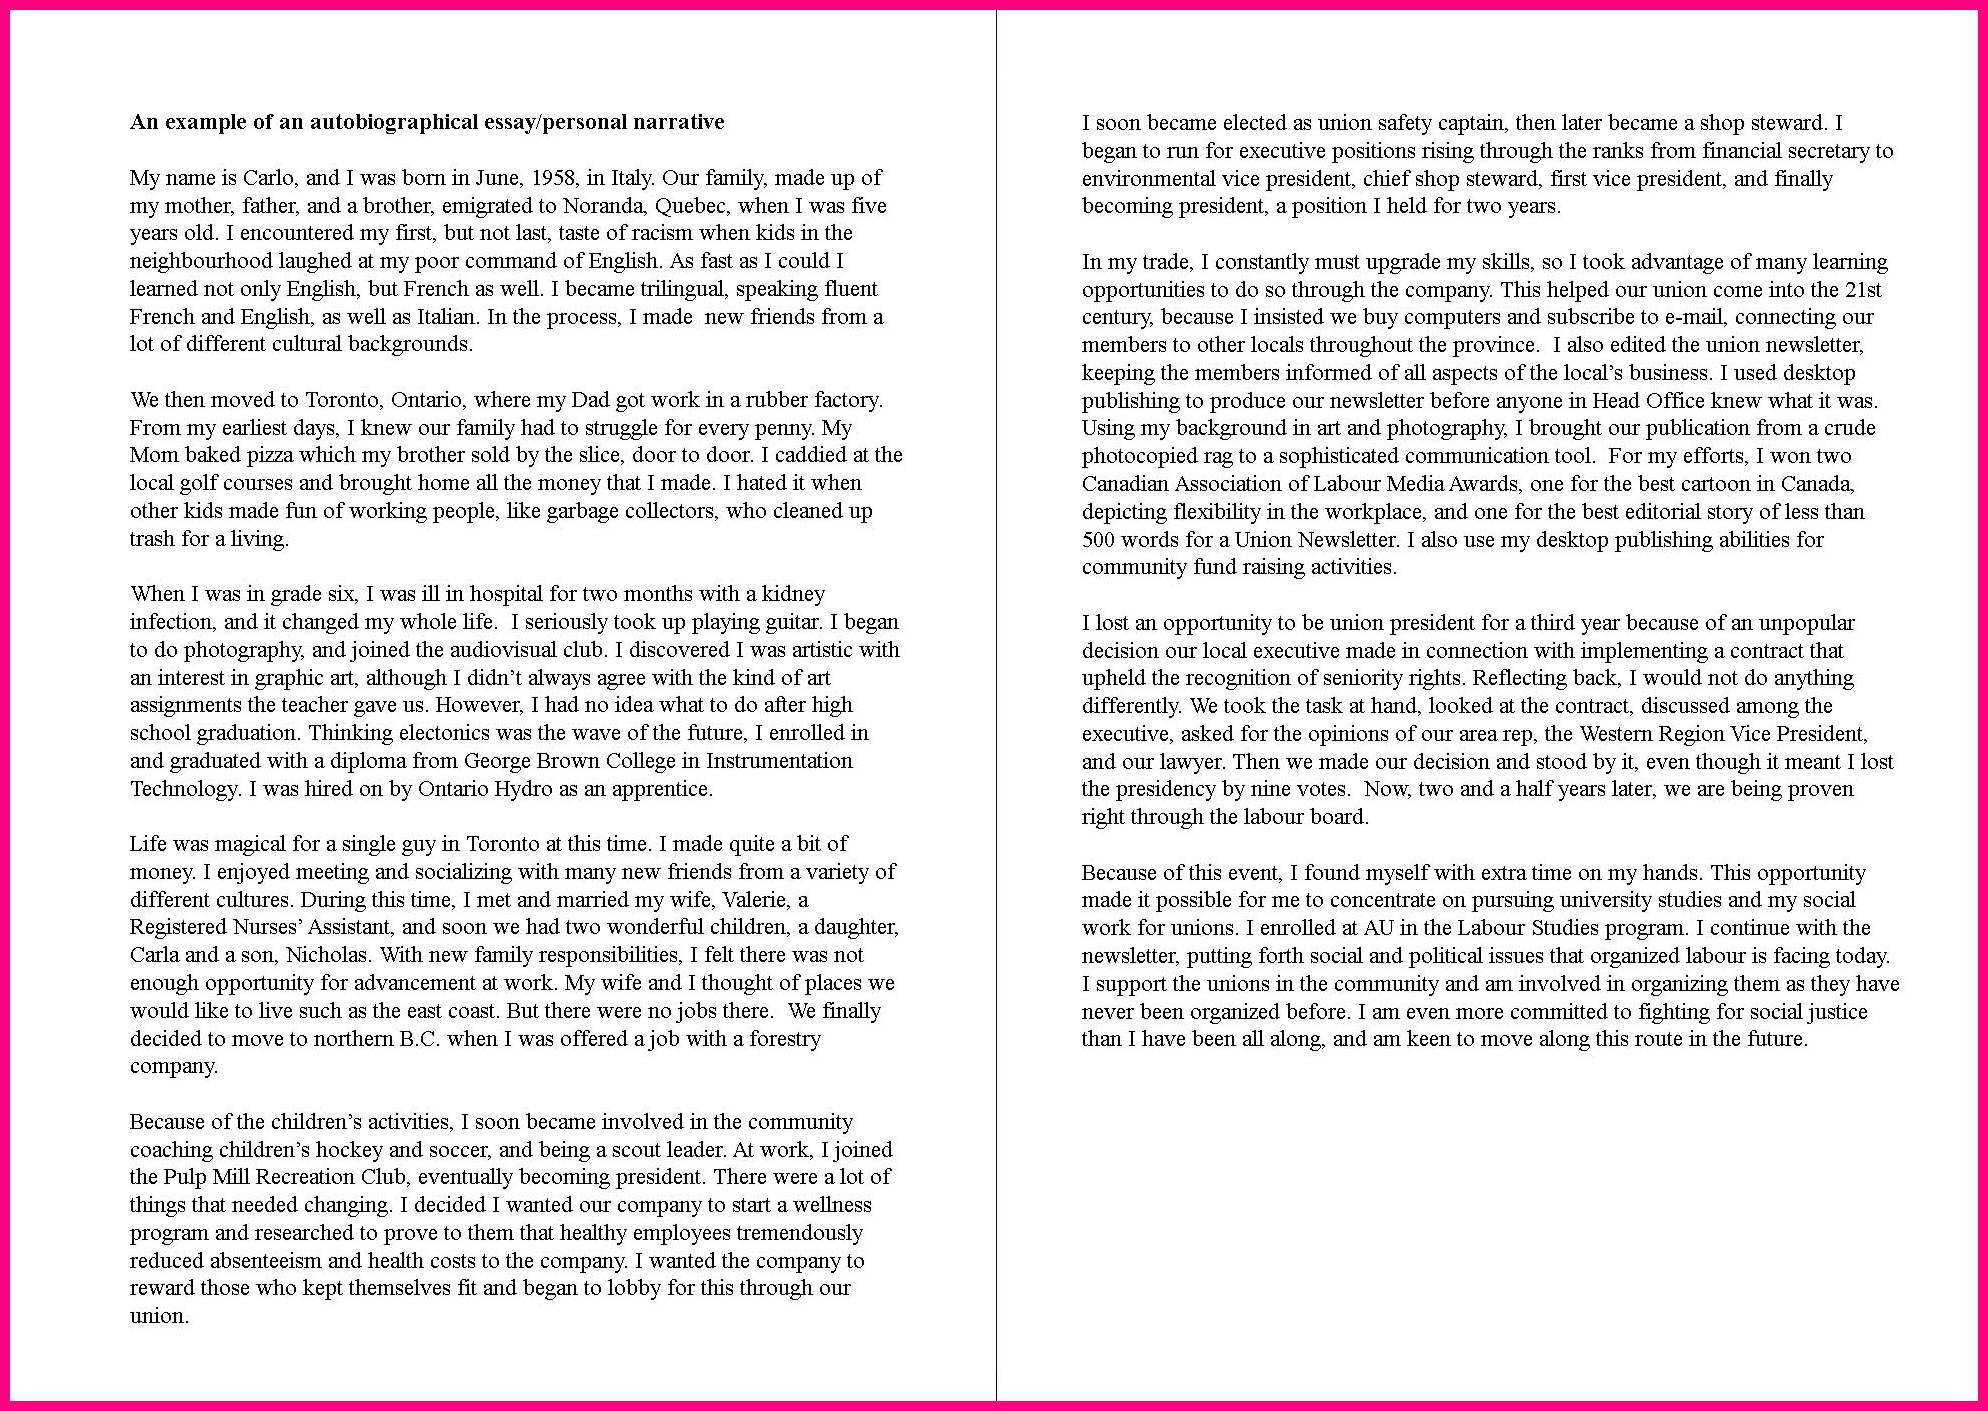 005 Autobiography Essay Example Family Background Sample Autobiographical Unique For Highschool Students Pdf Bibliography Examples Full